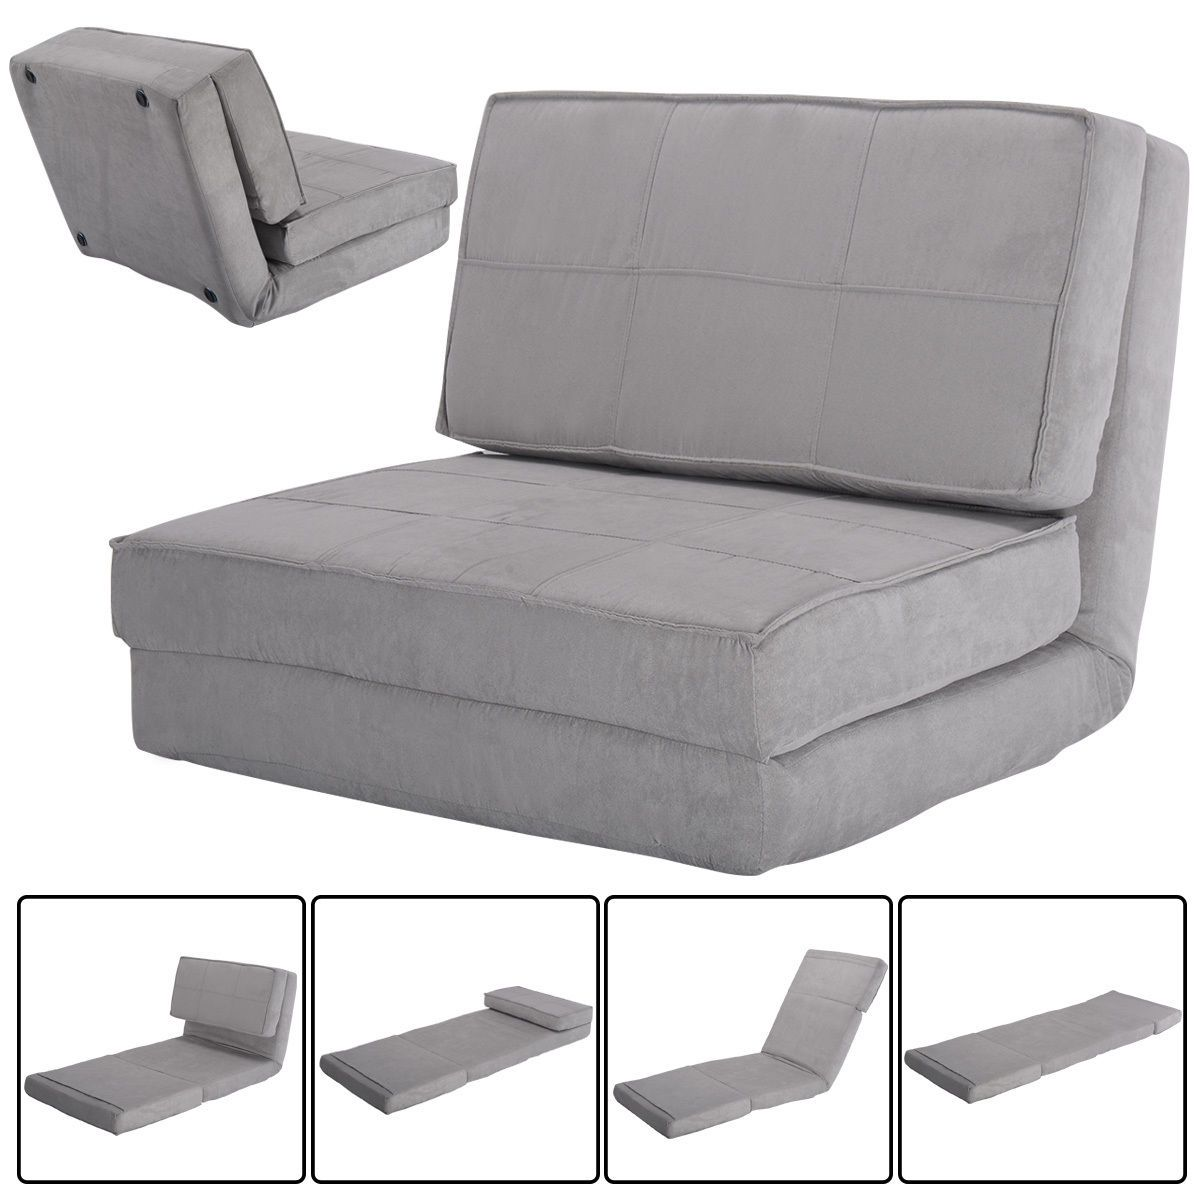 make into size africakabisa full uk that bed single sofa beds chair chairs upholstered futon org small